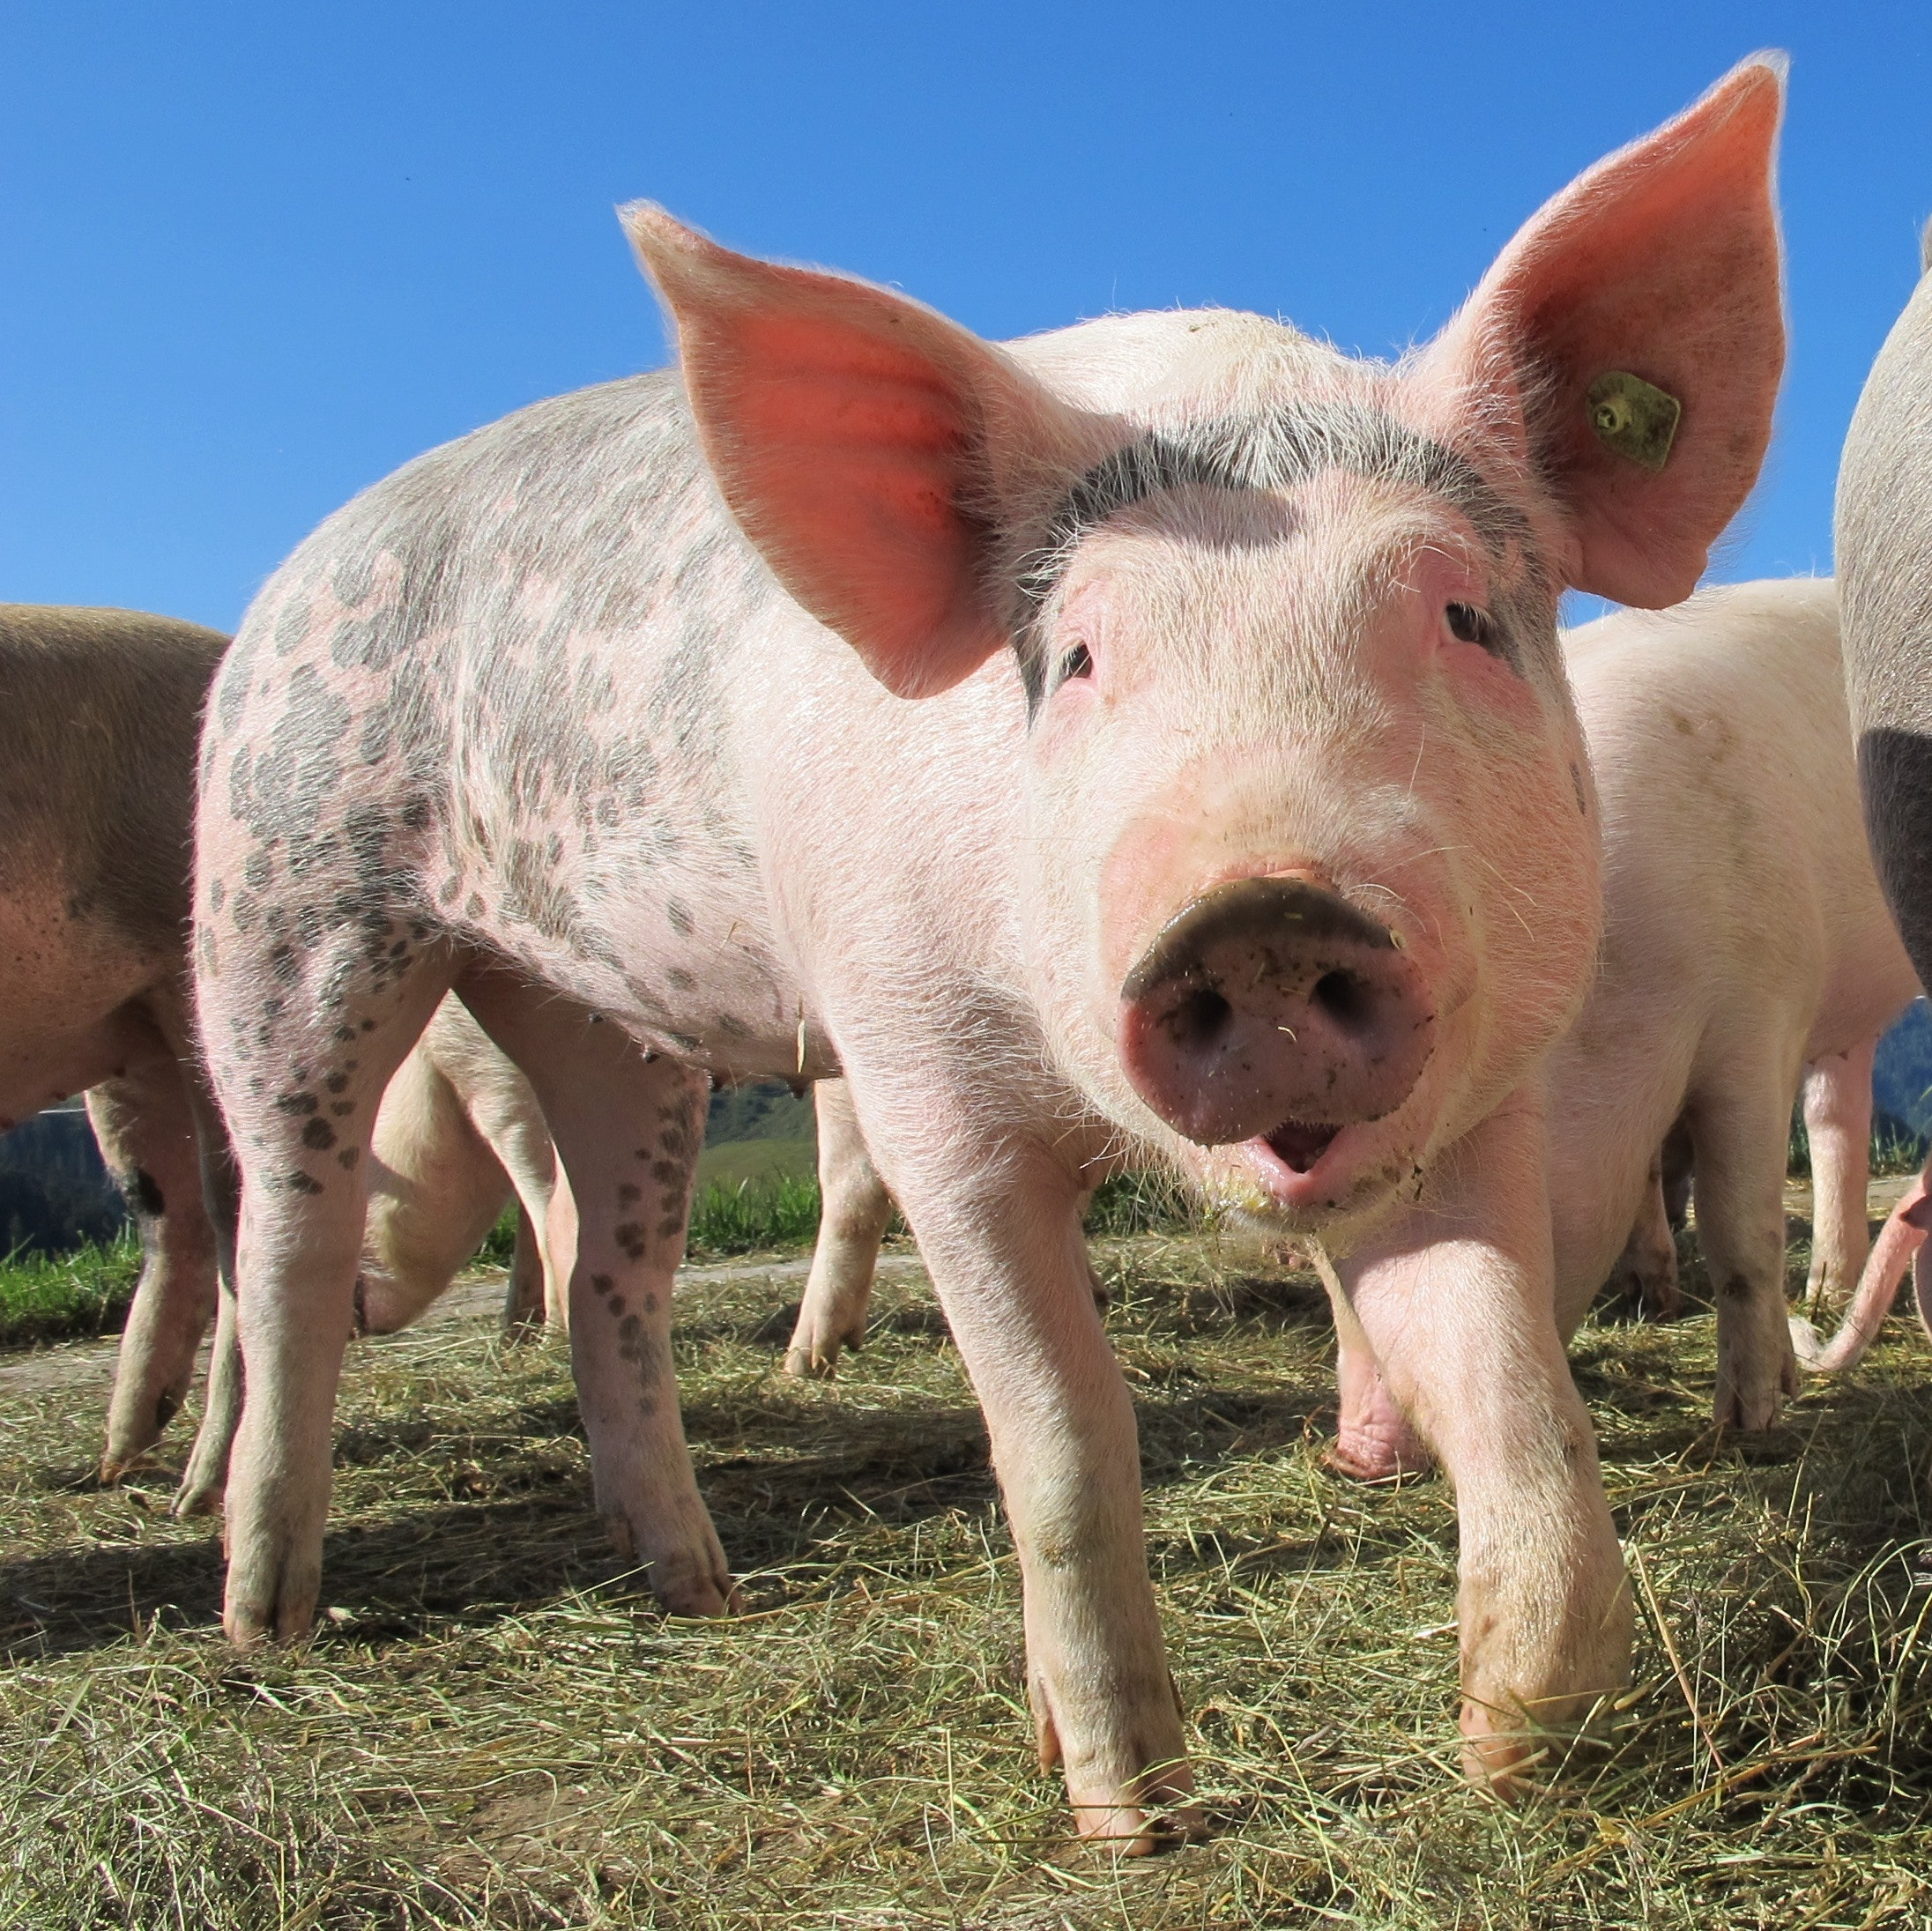 Meaty Rally in Lean Hogs as China Buys More Pork